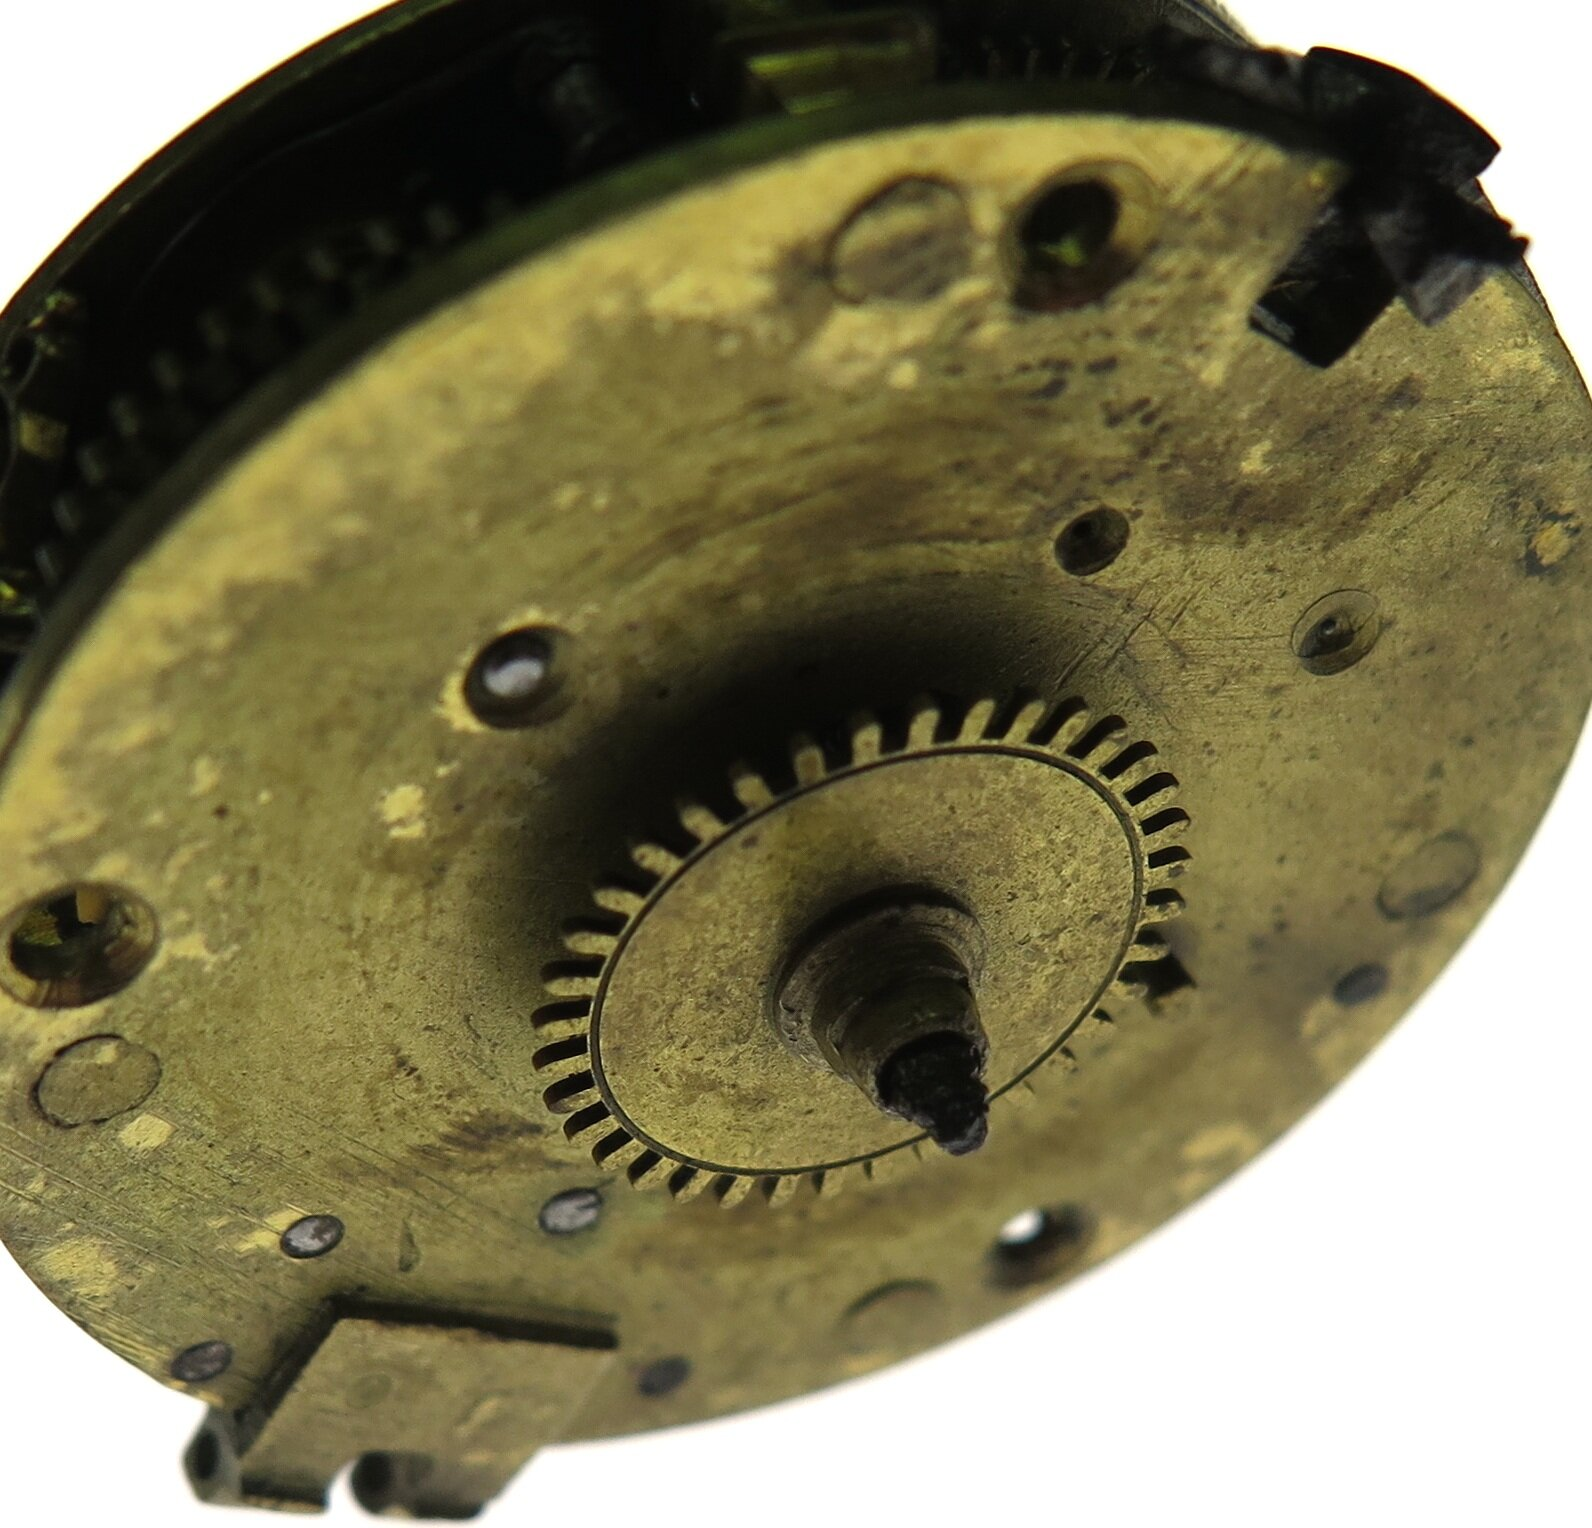 pocket watch movement diagram 5 pin trailer plug wiring south africa the naked watchmaker dial side of